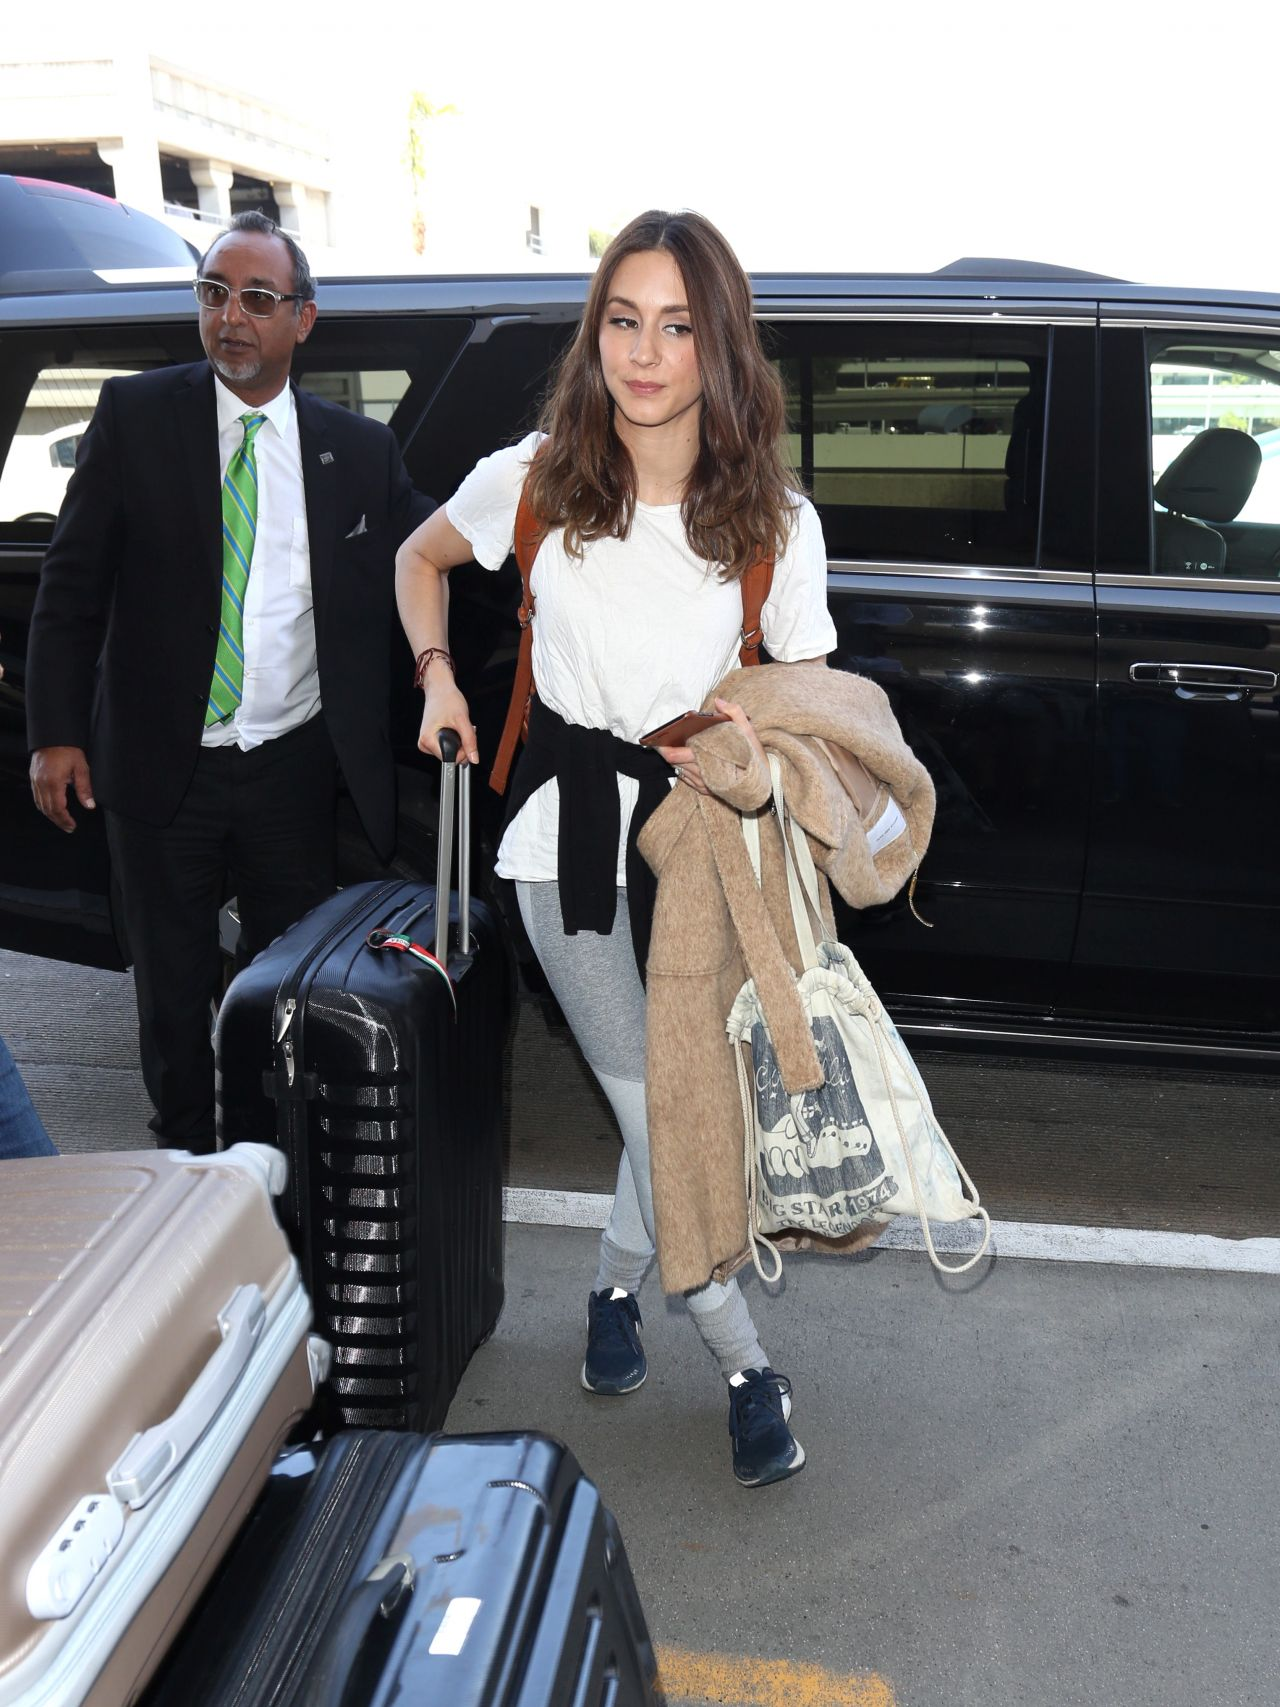 Troian bellisario travel outfit at lax airport nudes (92 photos)